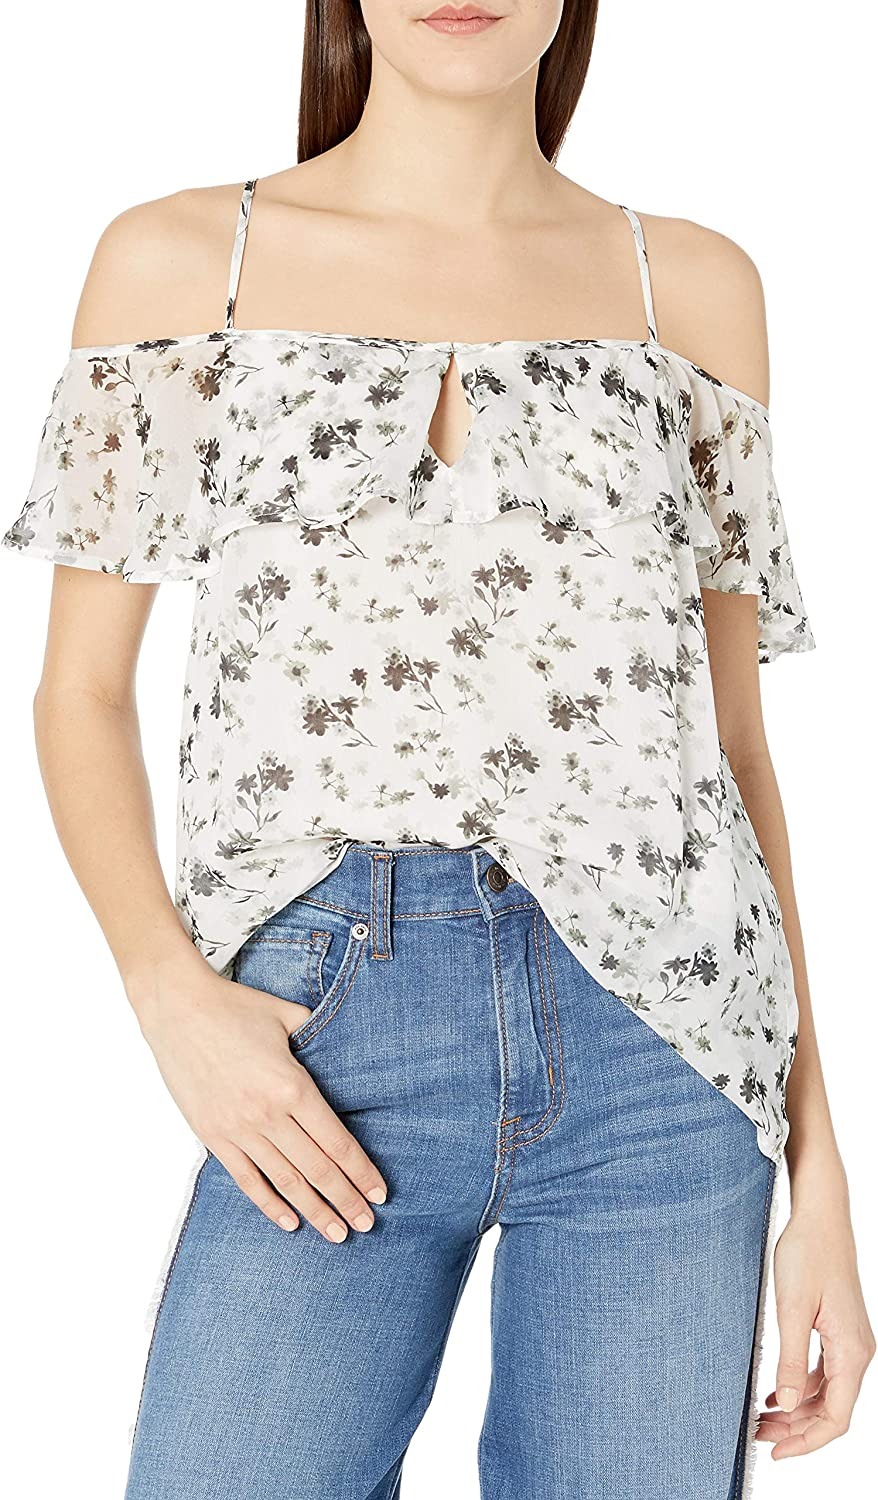 Lucky Brand Women's Ruffled latest Top Tank Max 49% OFF